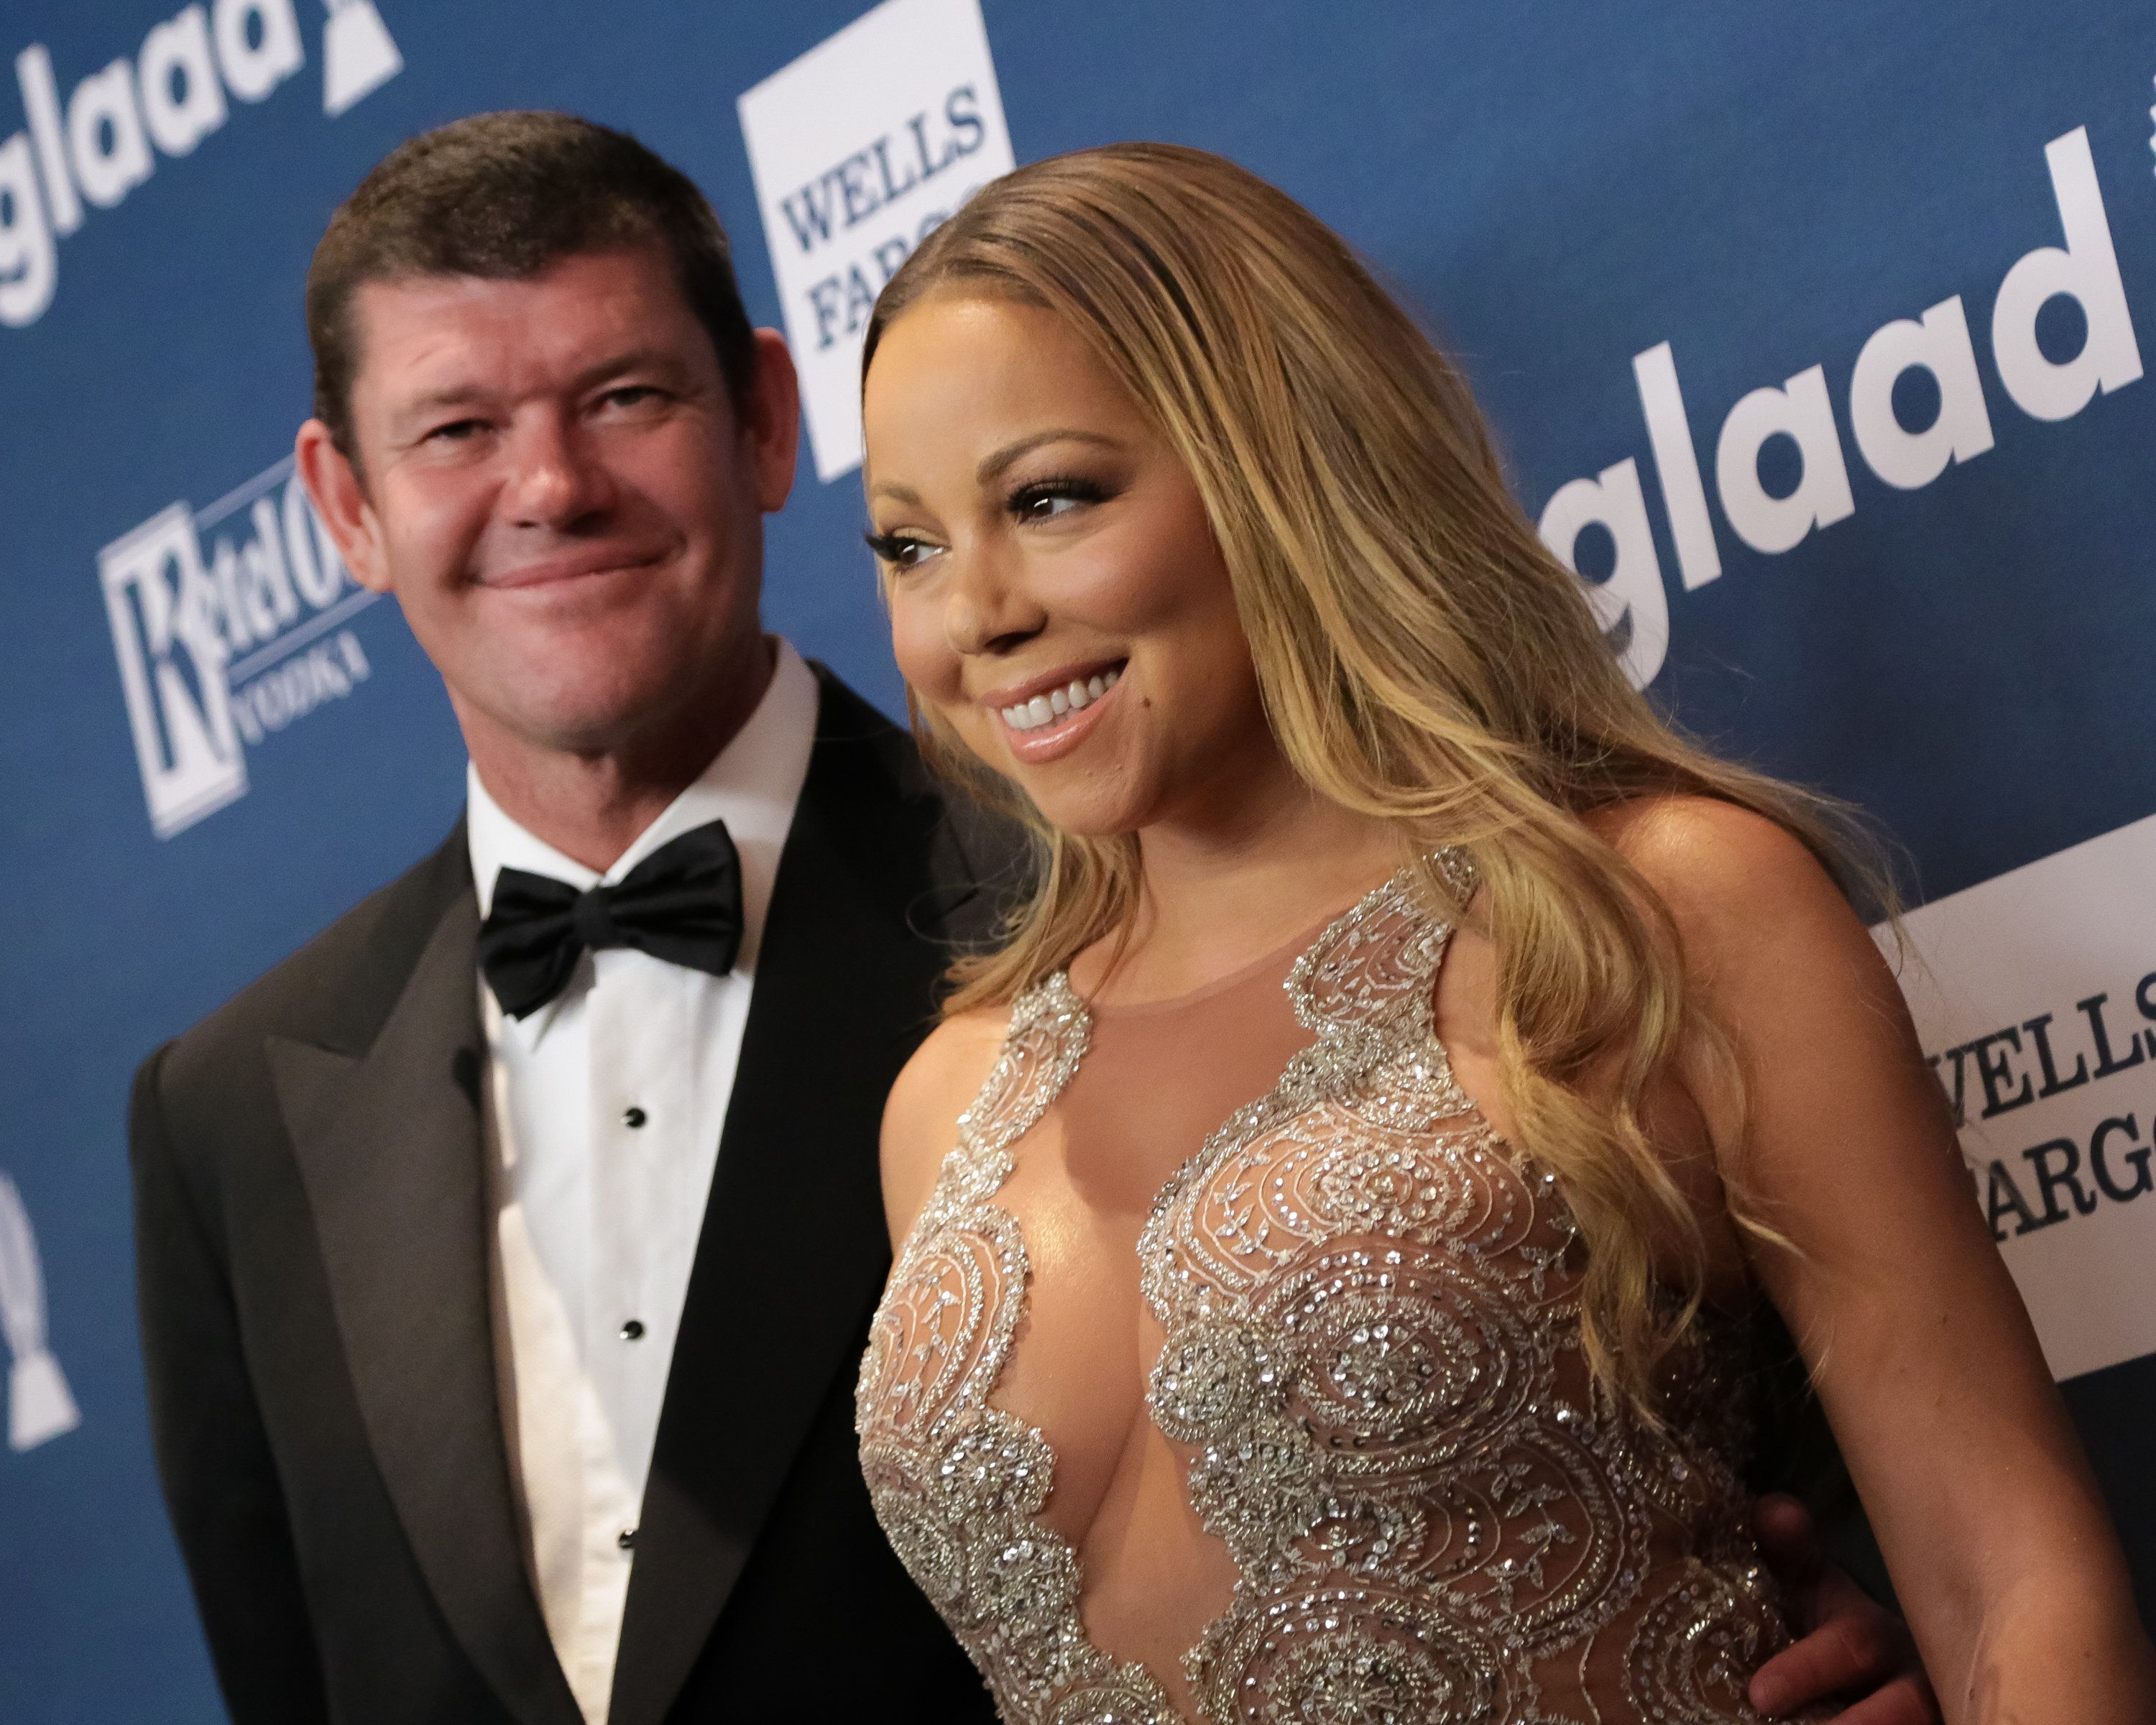 Mariah Carey's Ex-Fiancé James Packer Says Relationship With US Singer Was A